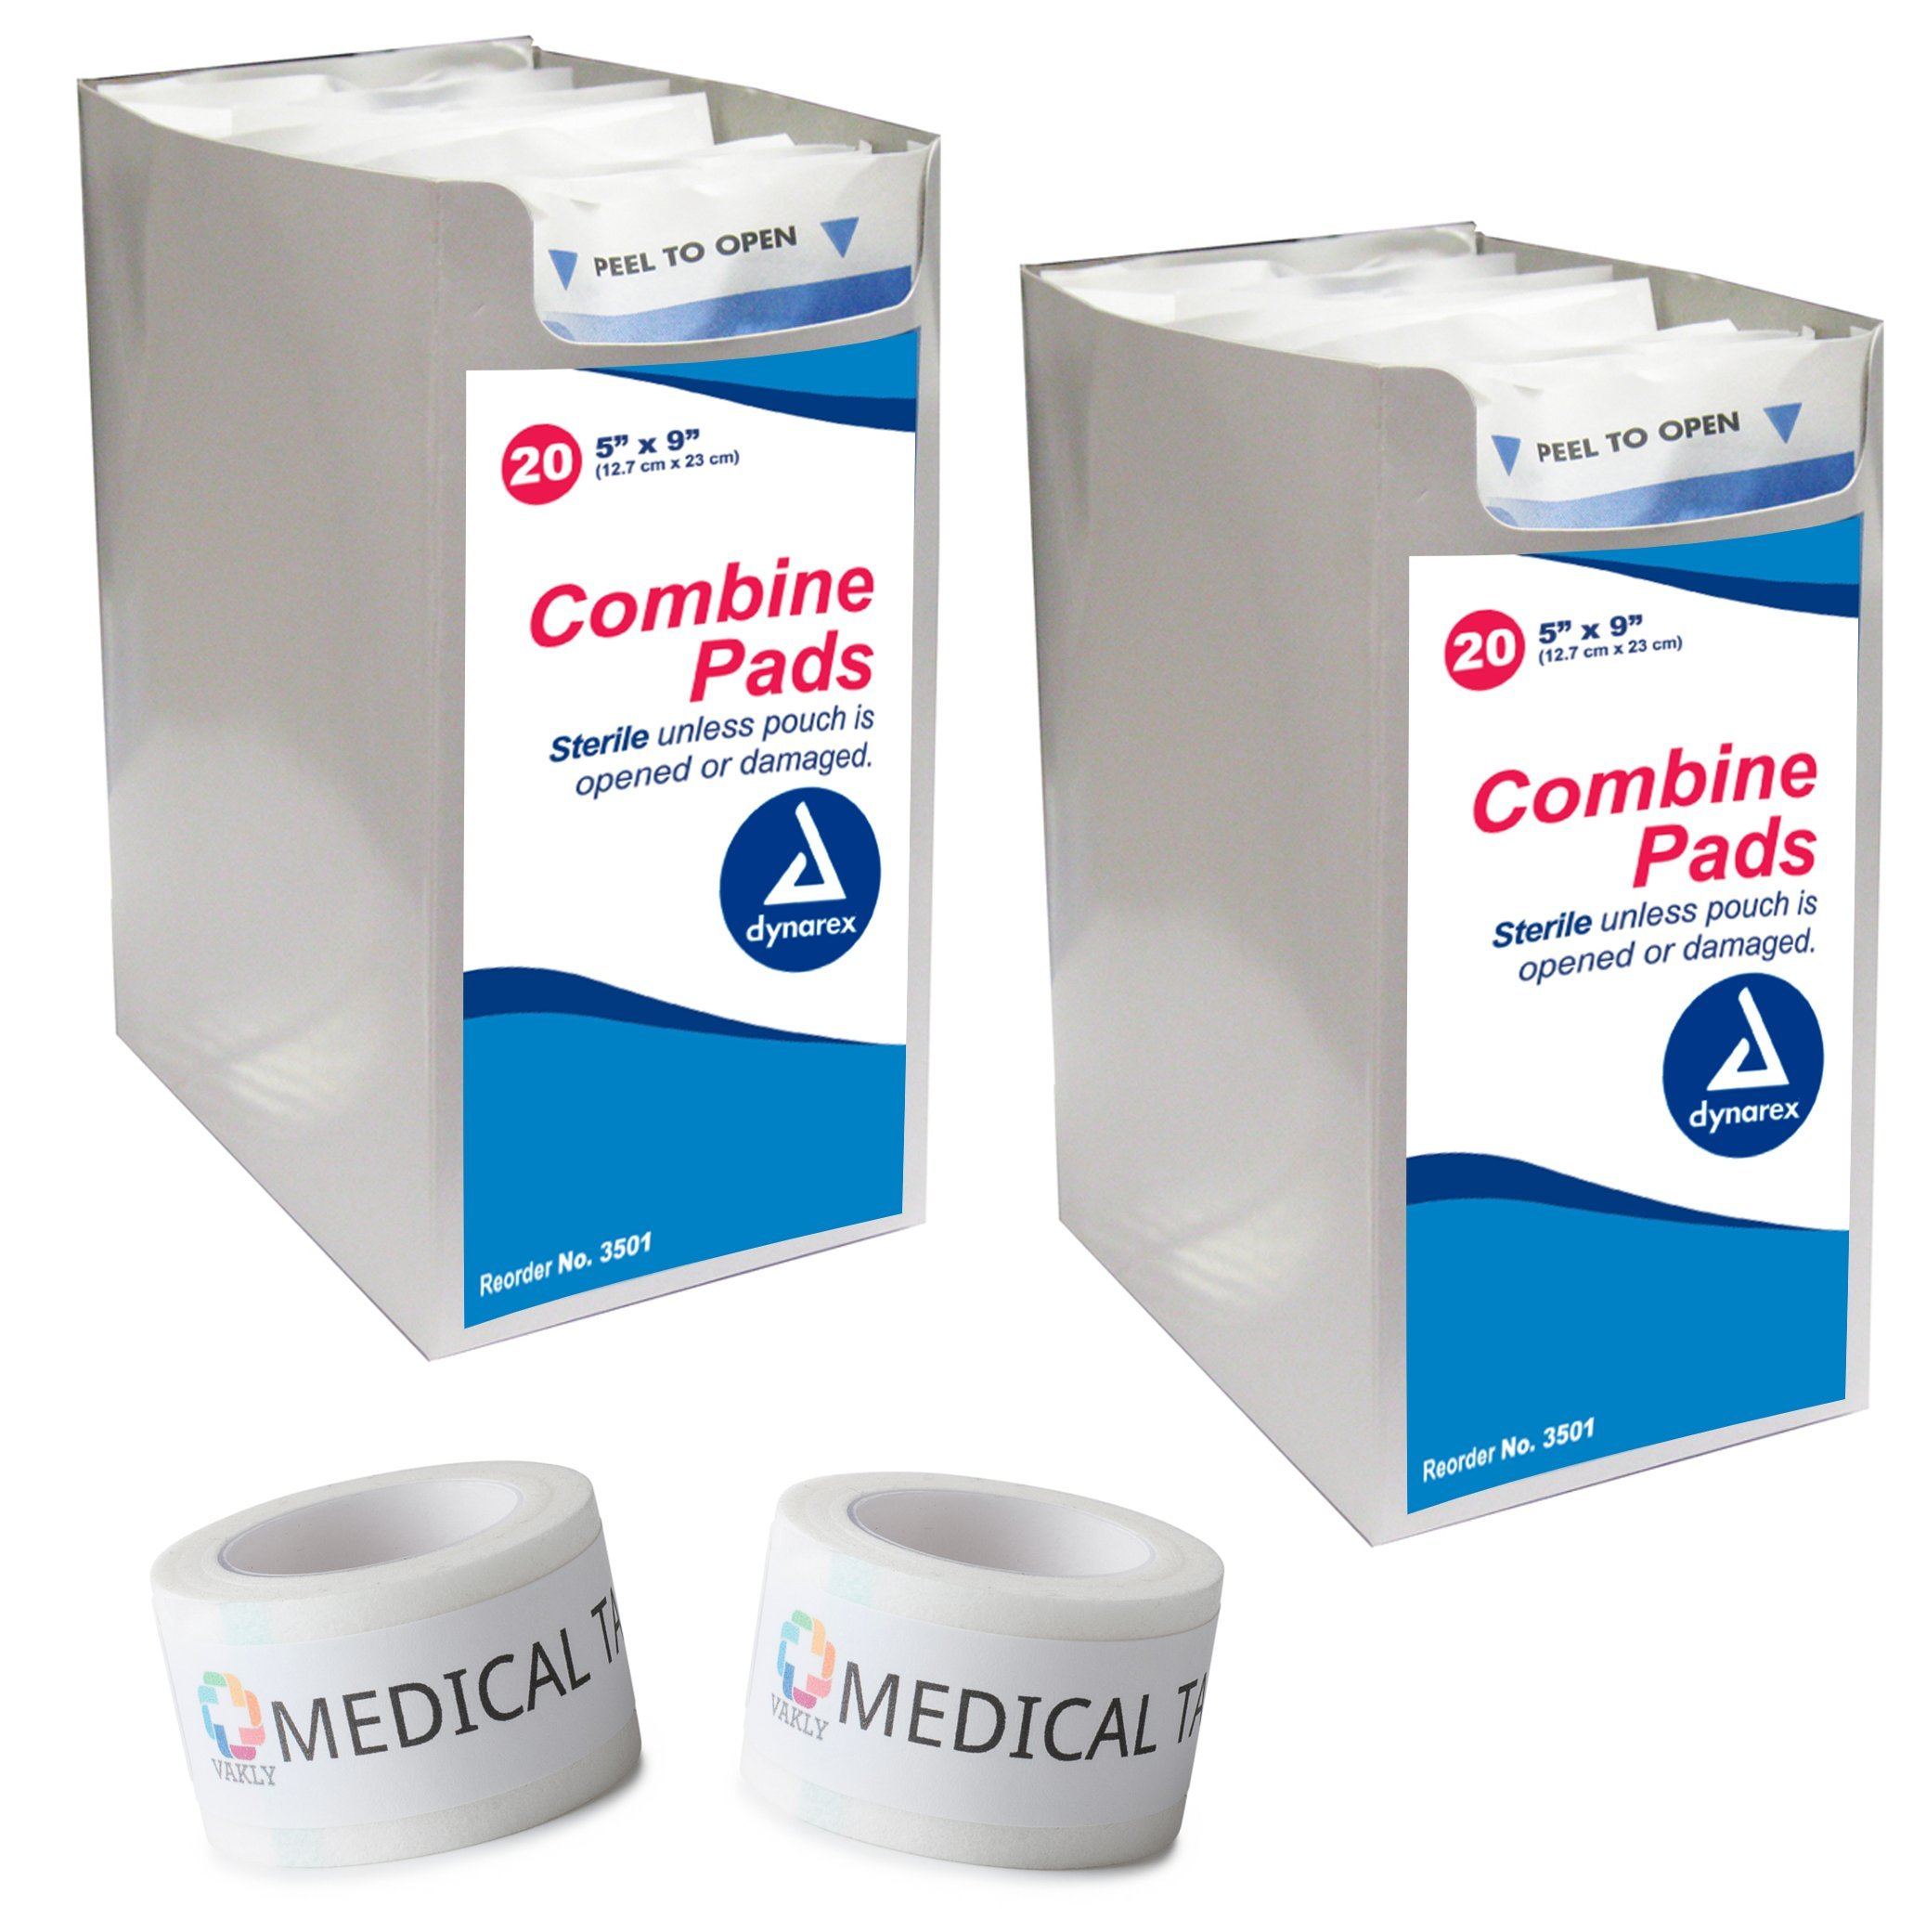 Sterile 5x9 Combine Abdominal Pads 2 Packs Of 20 + 2 Rolls Of Vakly Medical Tape (40 Pads + 2 Rolls) …